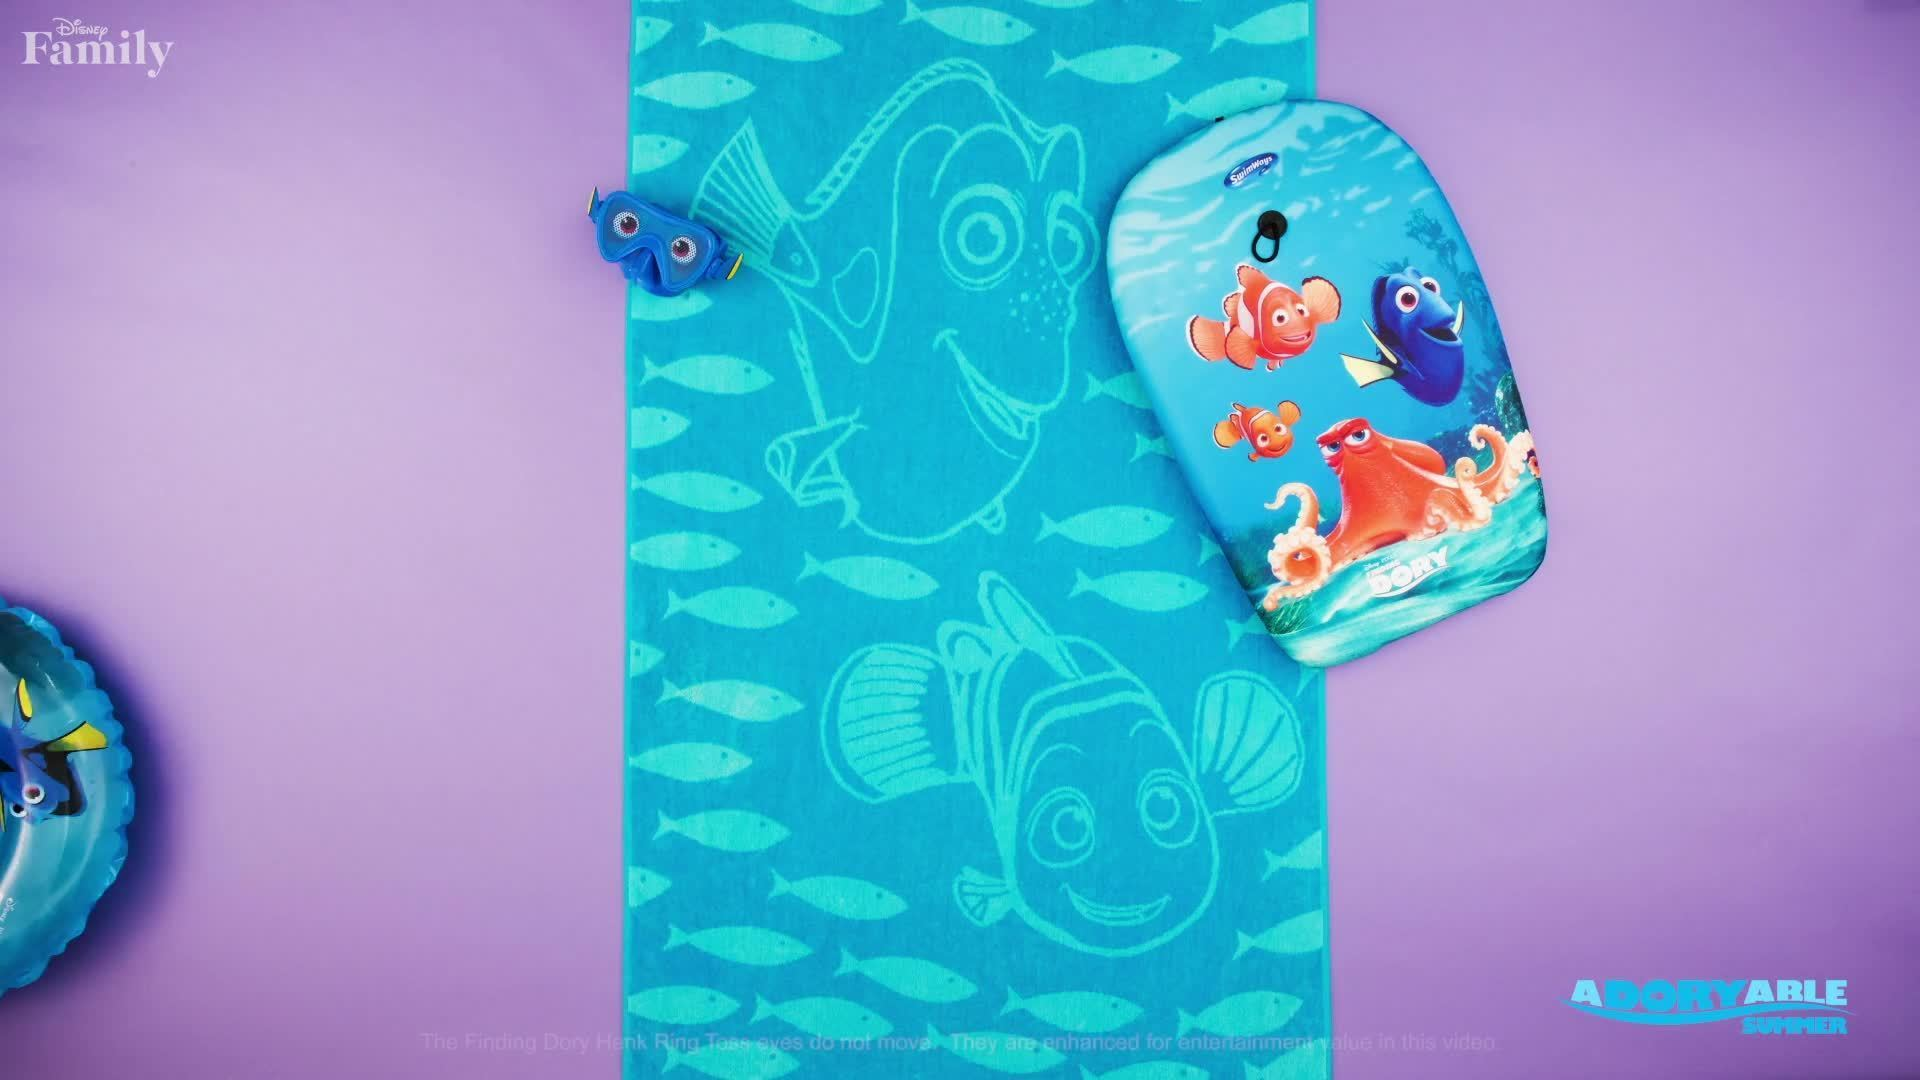 Disney Family: Dory Goes to the Beach